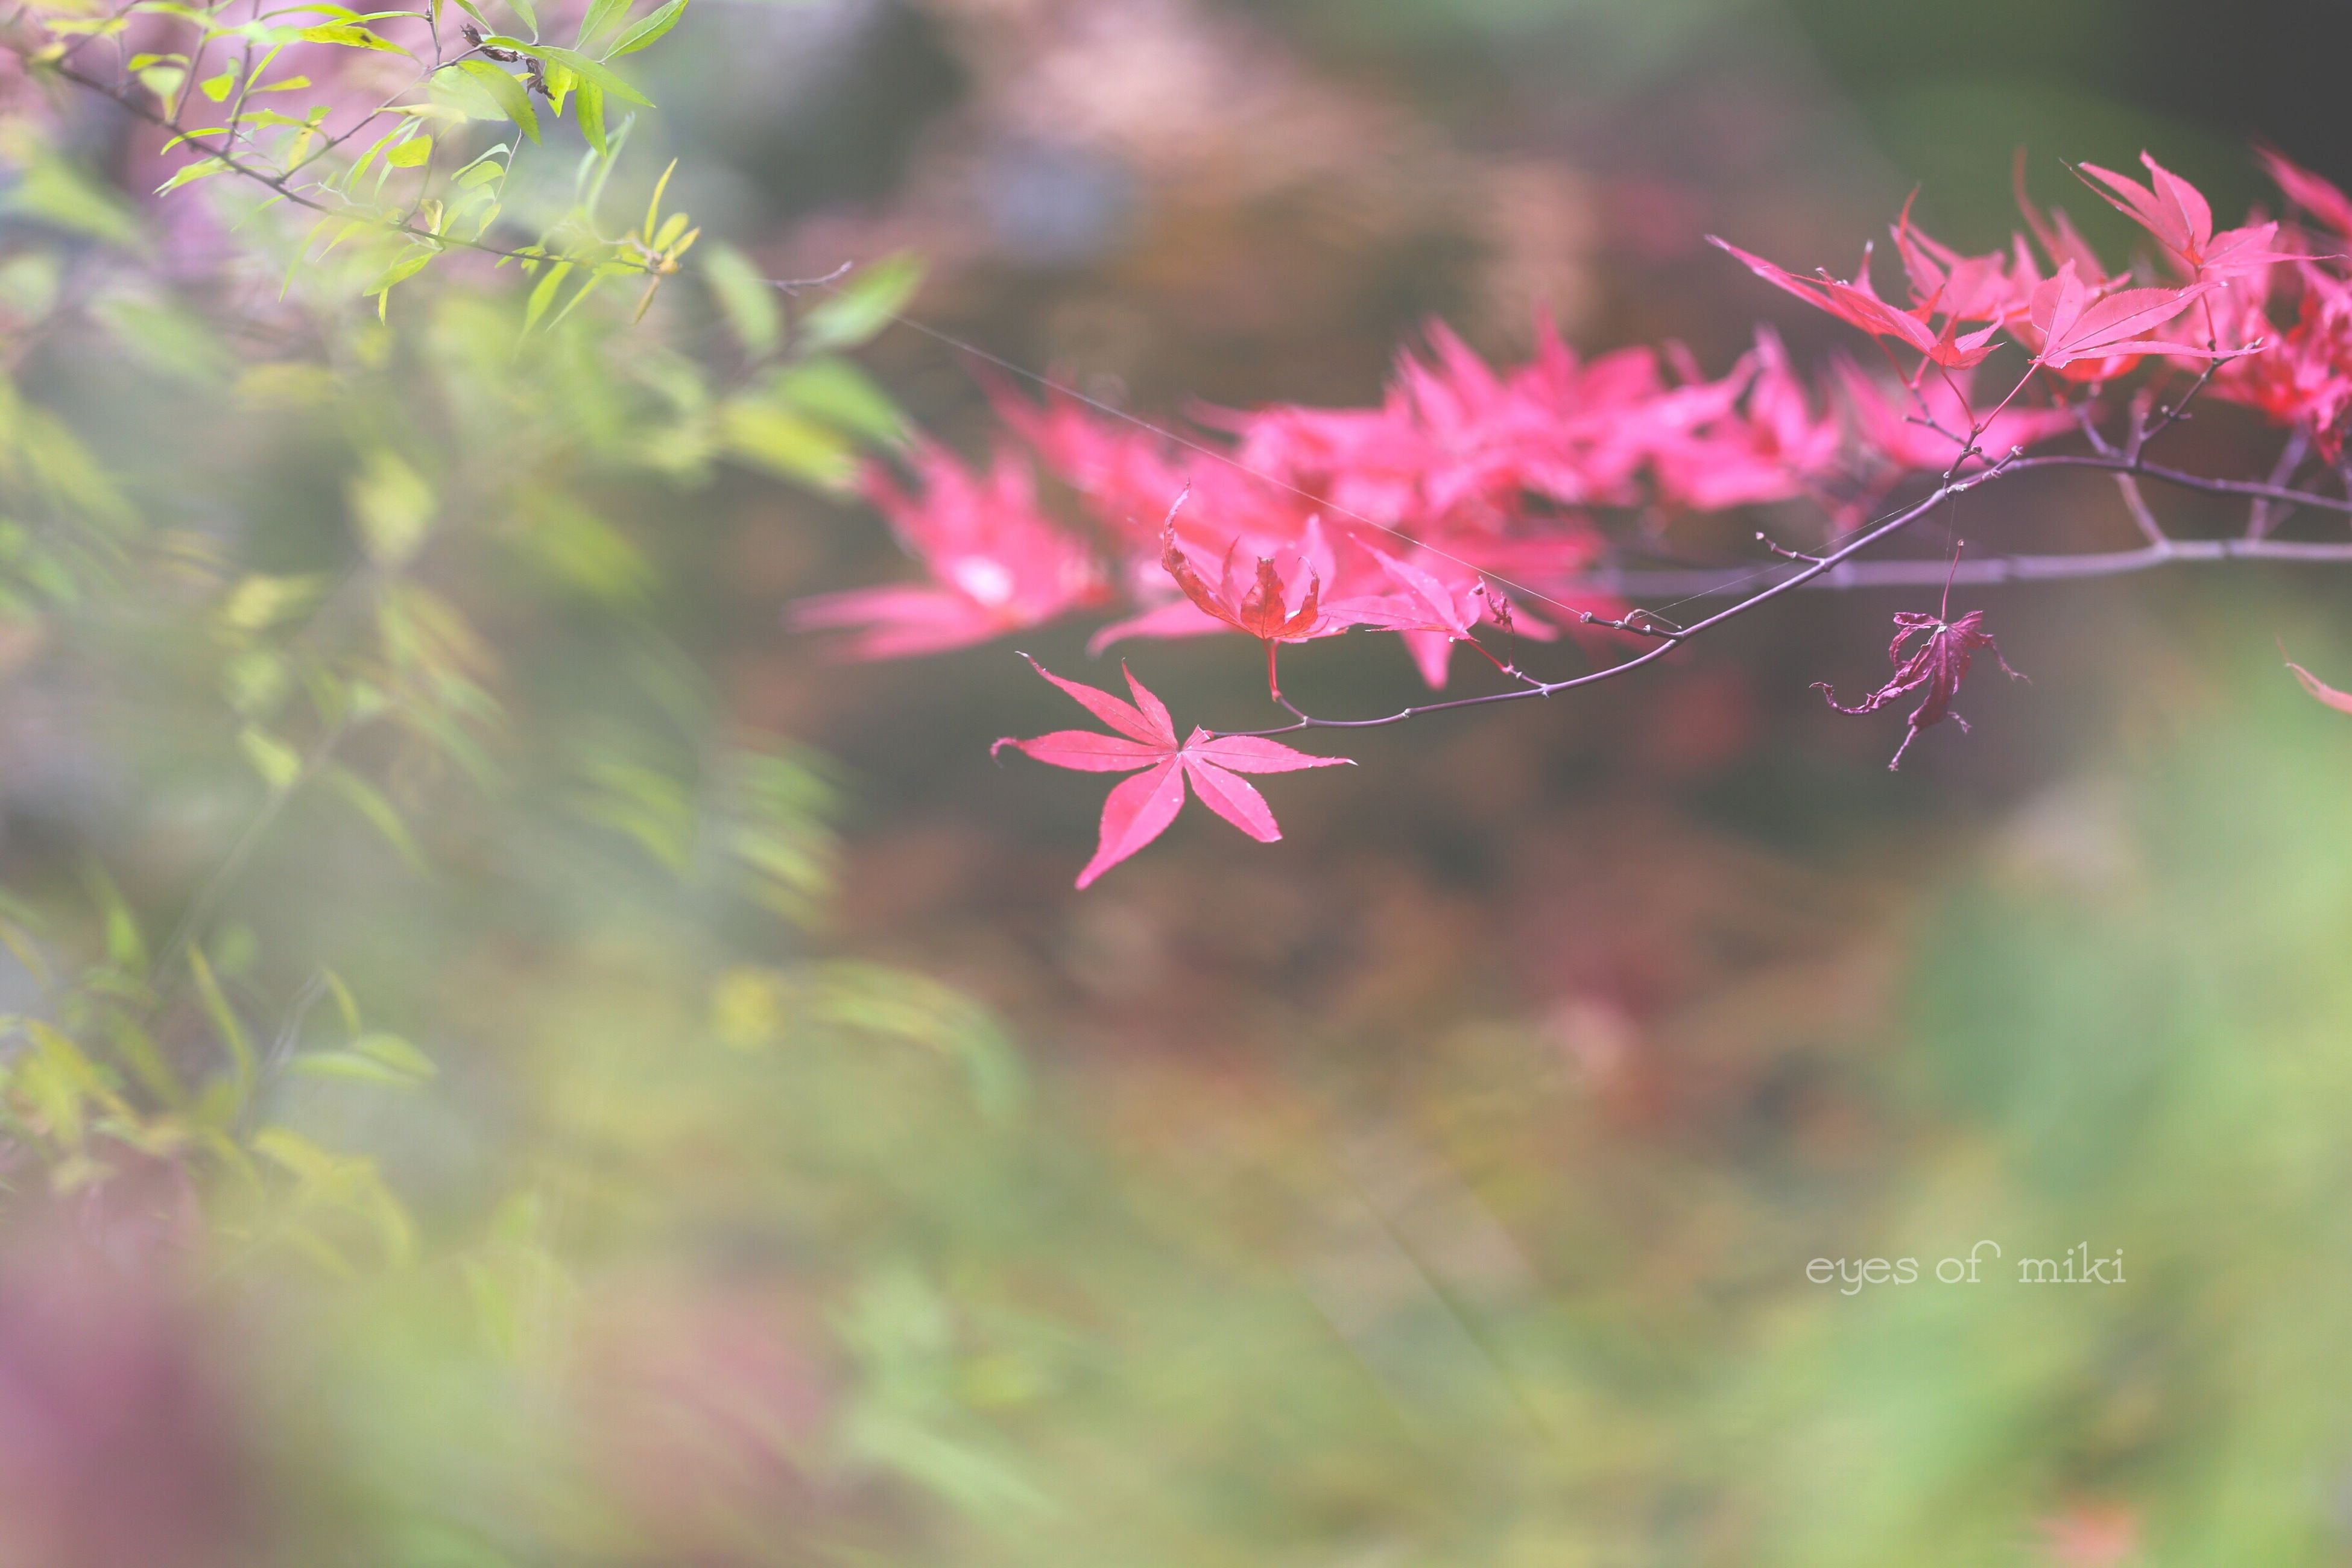 nature, growth, flower, plant, beauty in nature, fragility, freshness, no people, outdoors, close-up, leaf, day, flower head